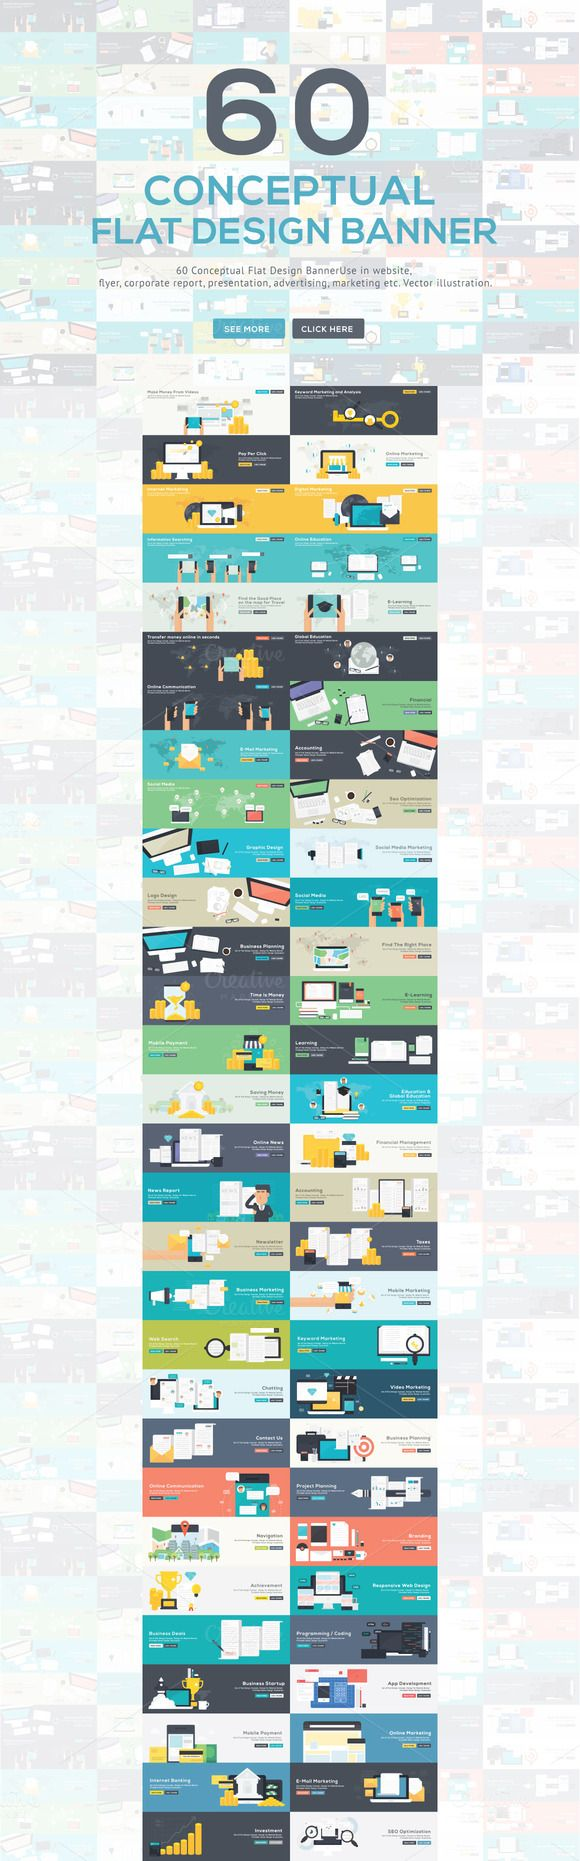 60 Conceptual Flat Design Banner by LINEPIX on Creative Market